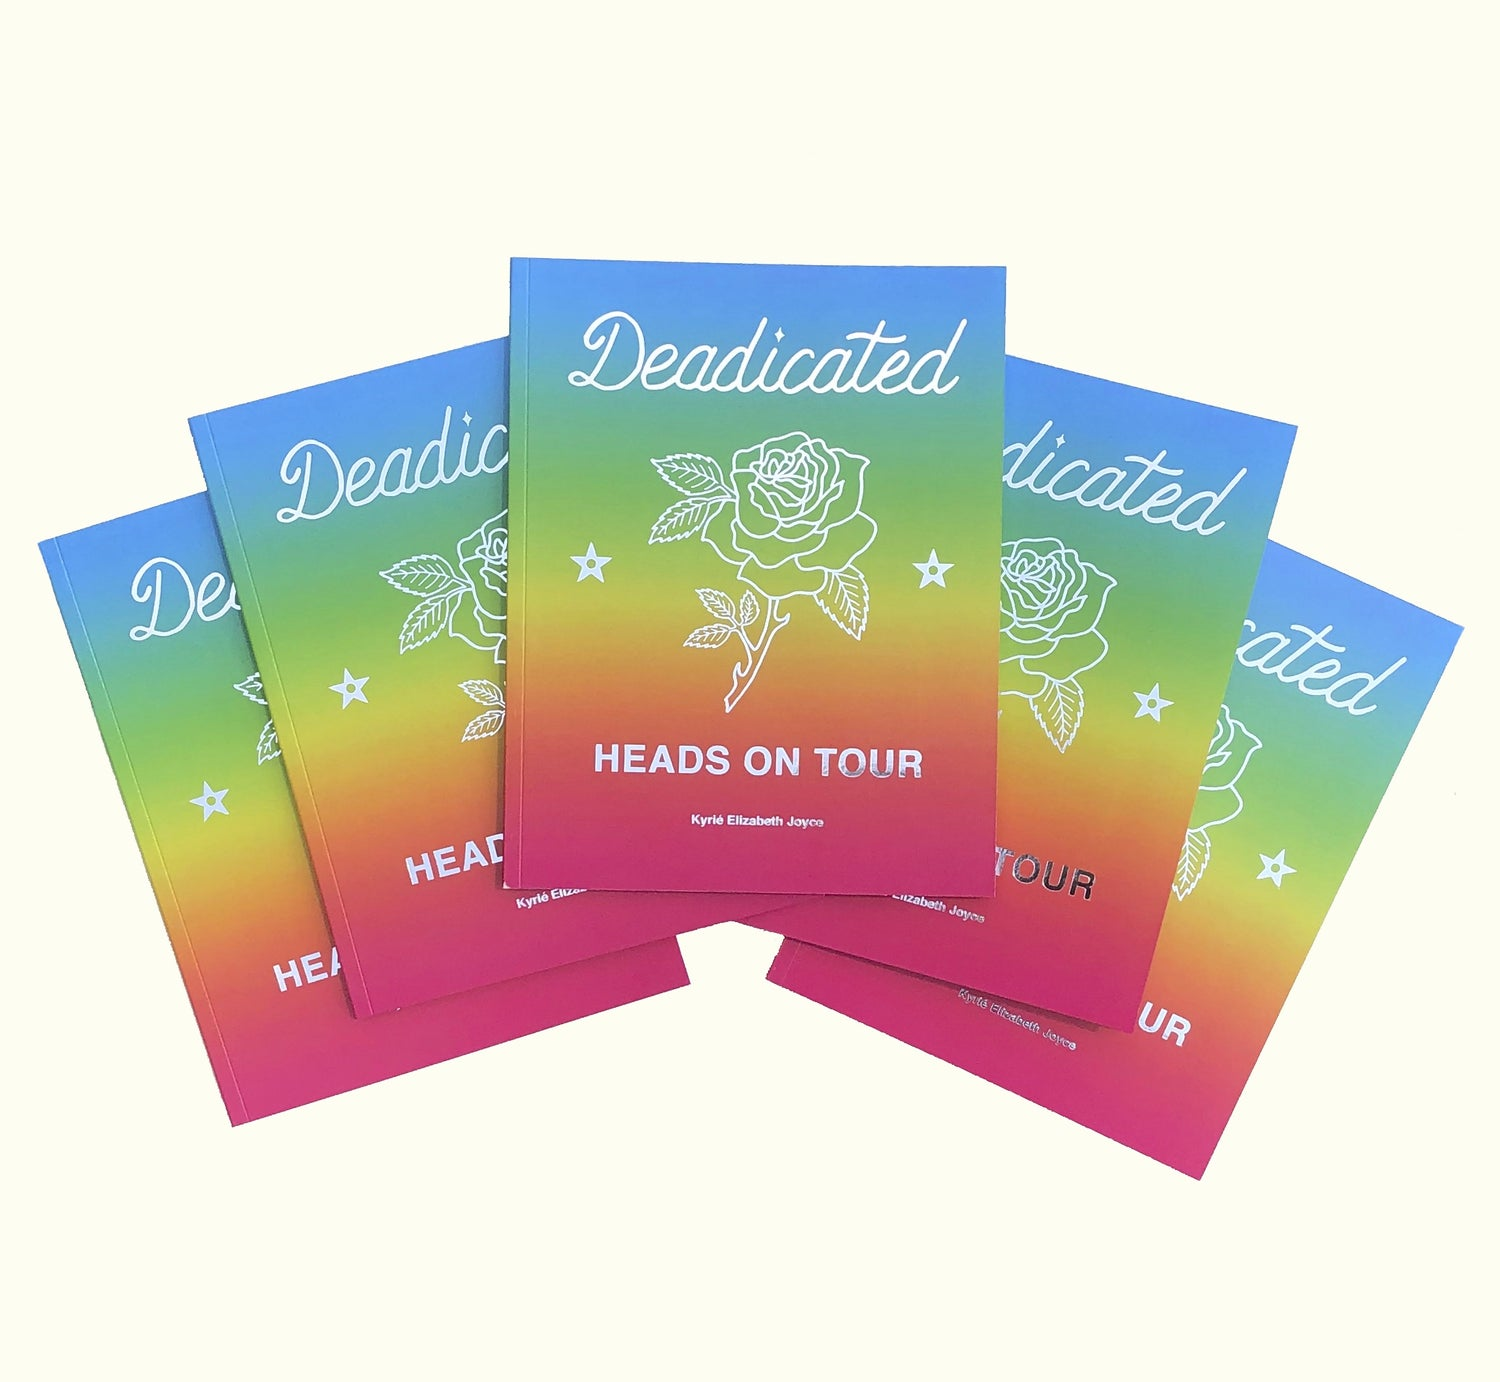 Image of Deadicated: Heads on Tour photobook